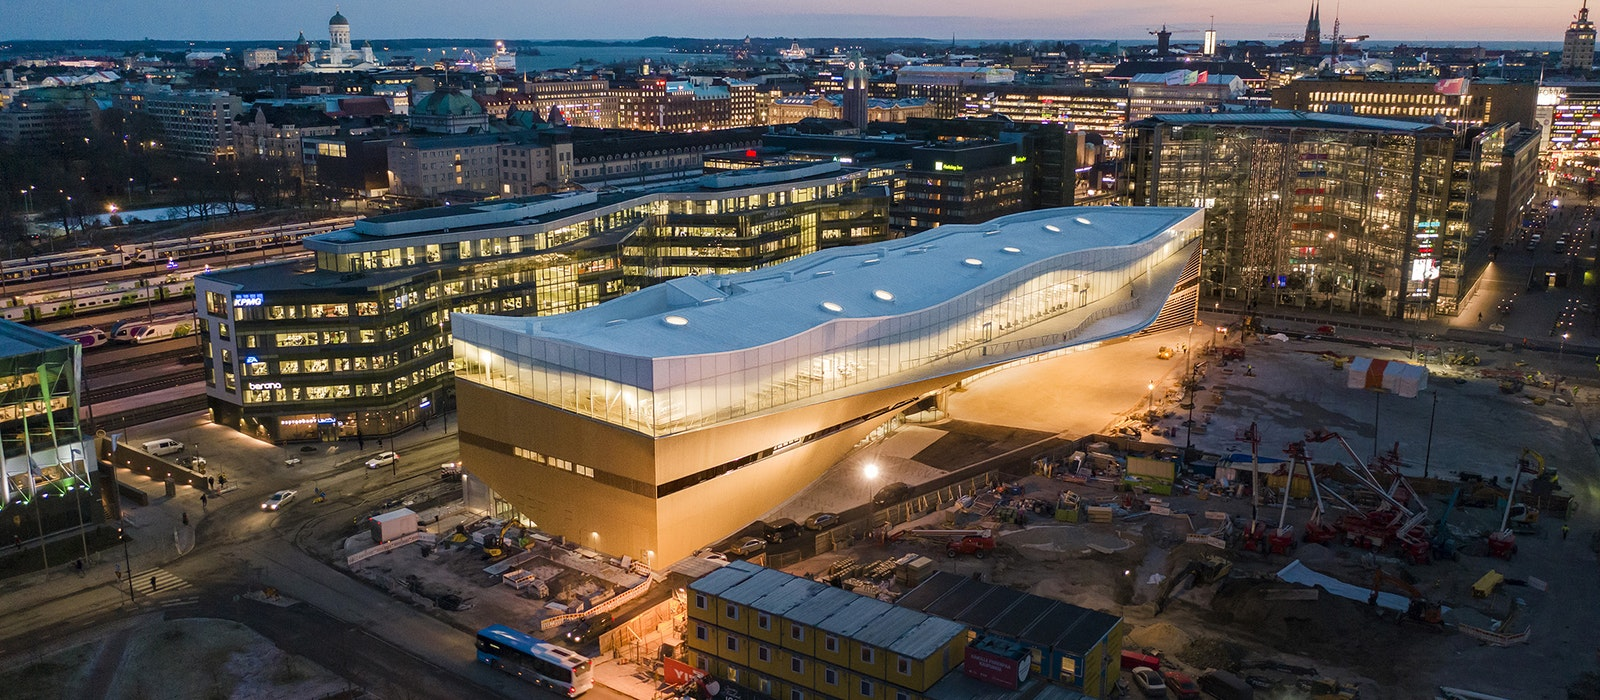 Designed by Finland's ALA Architects, Oodi is located in the heart of Helsinki.